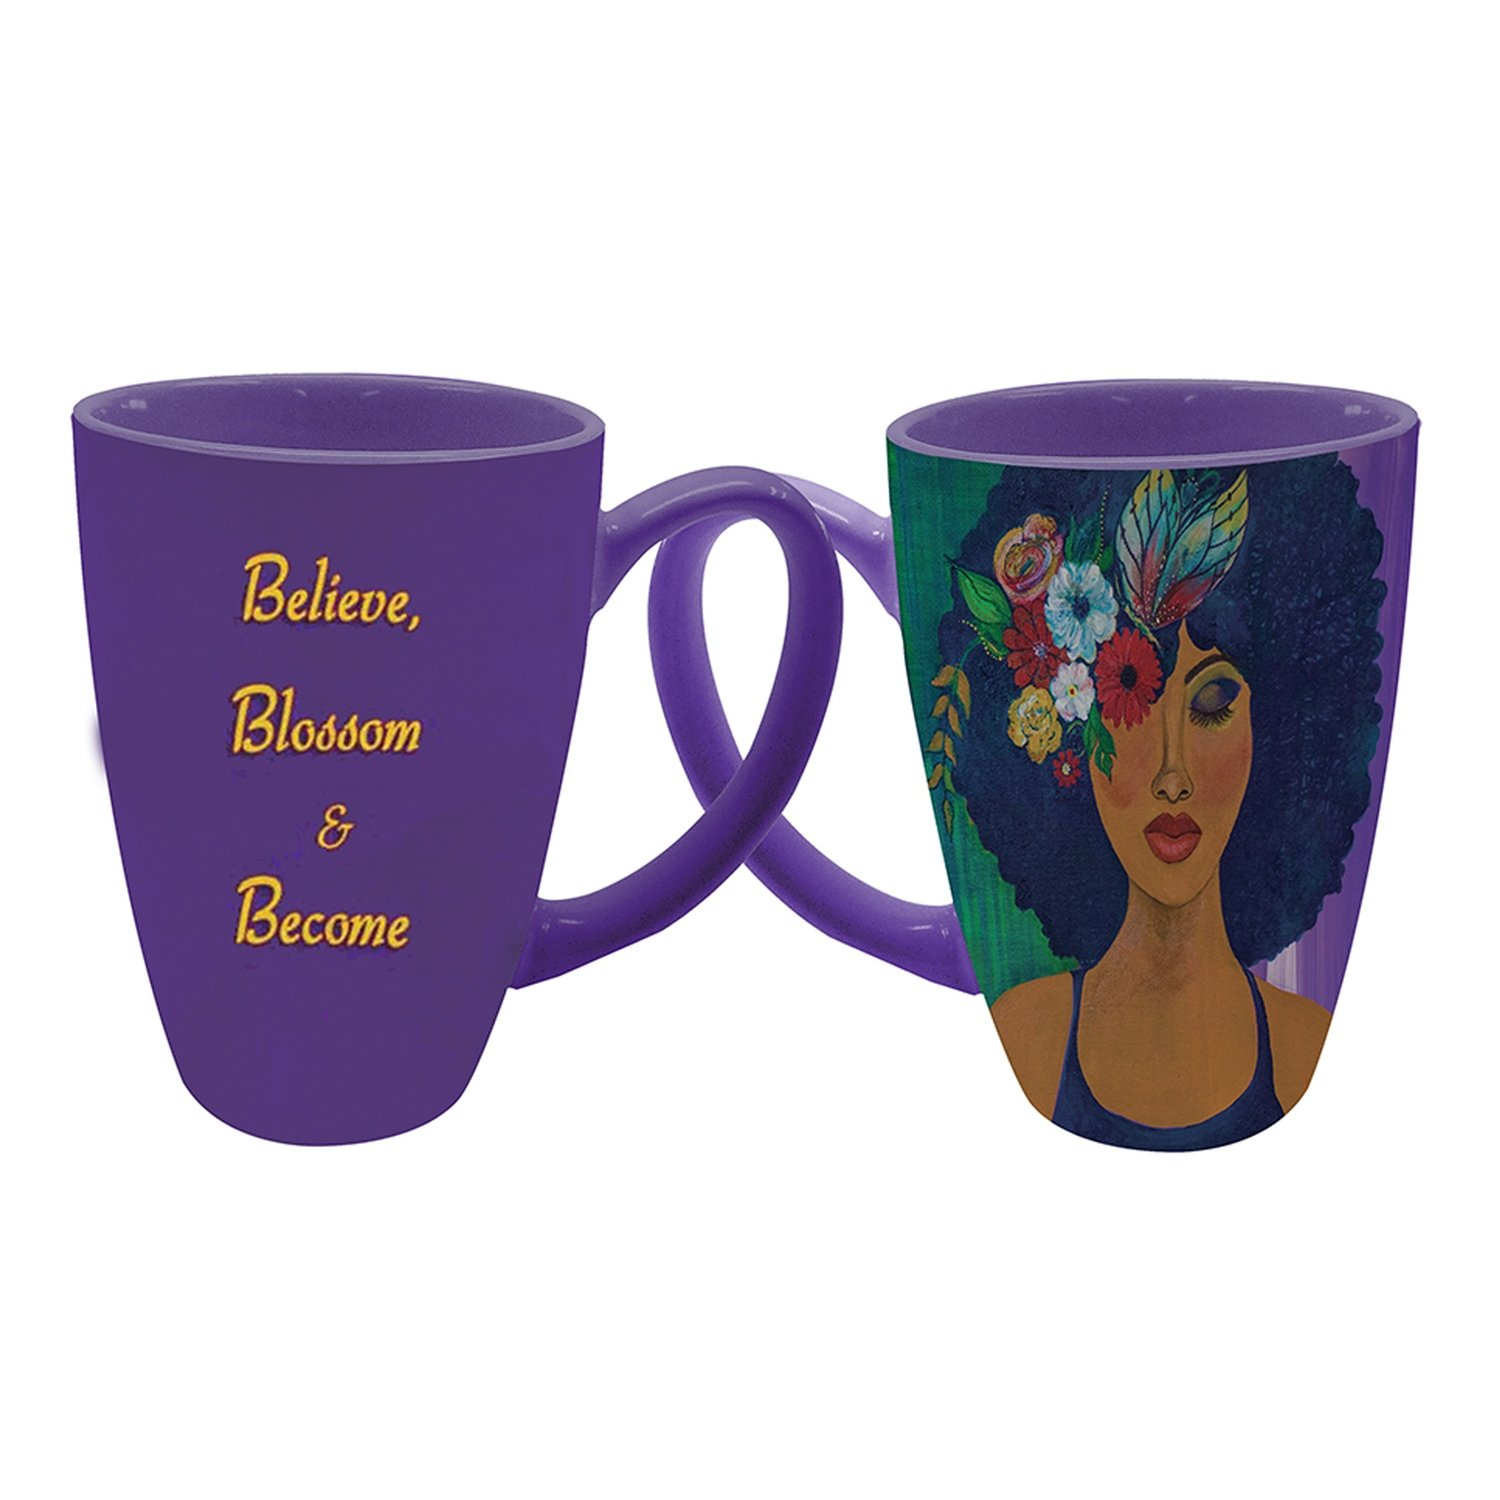 BELIEVE, BLOSSOM AND BECOME